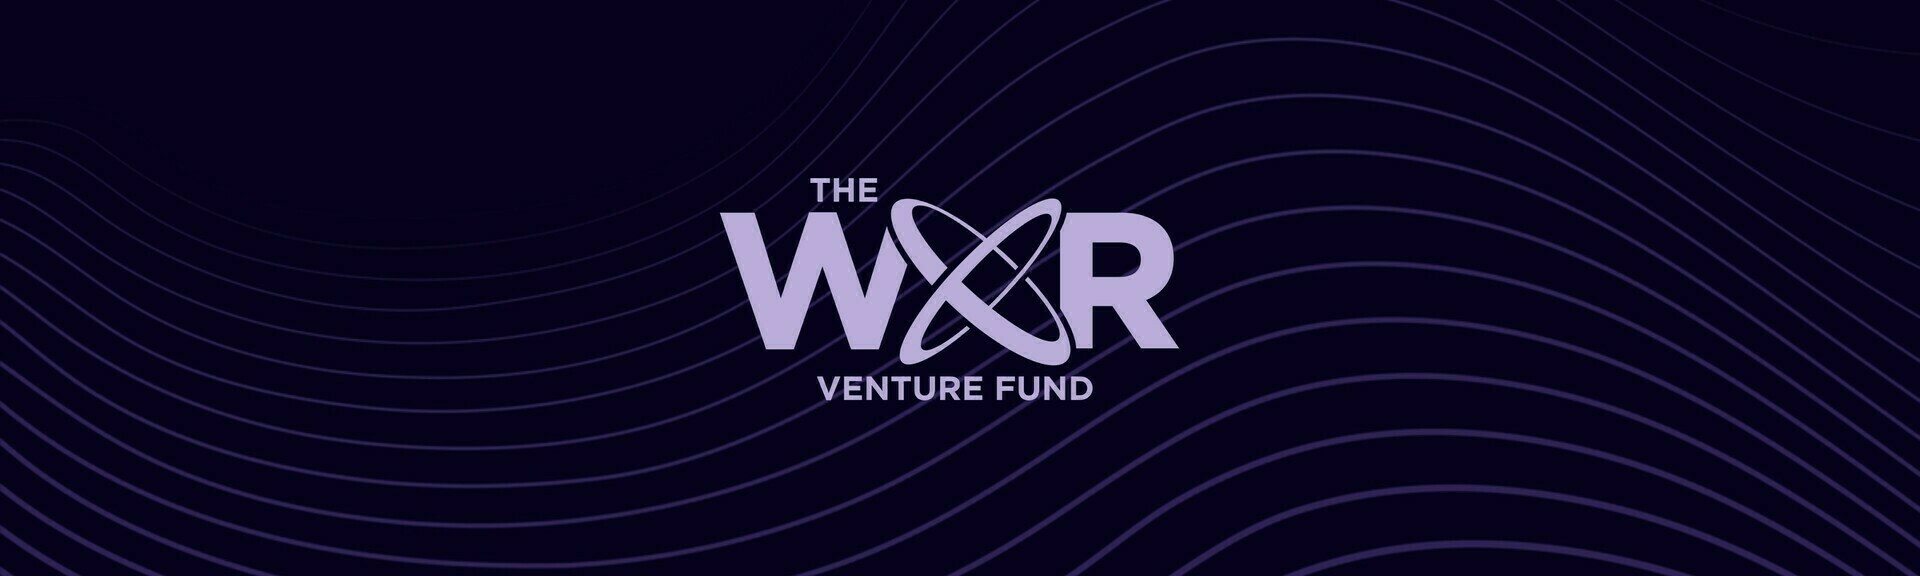 Wxr fund altspacevr channel